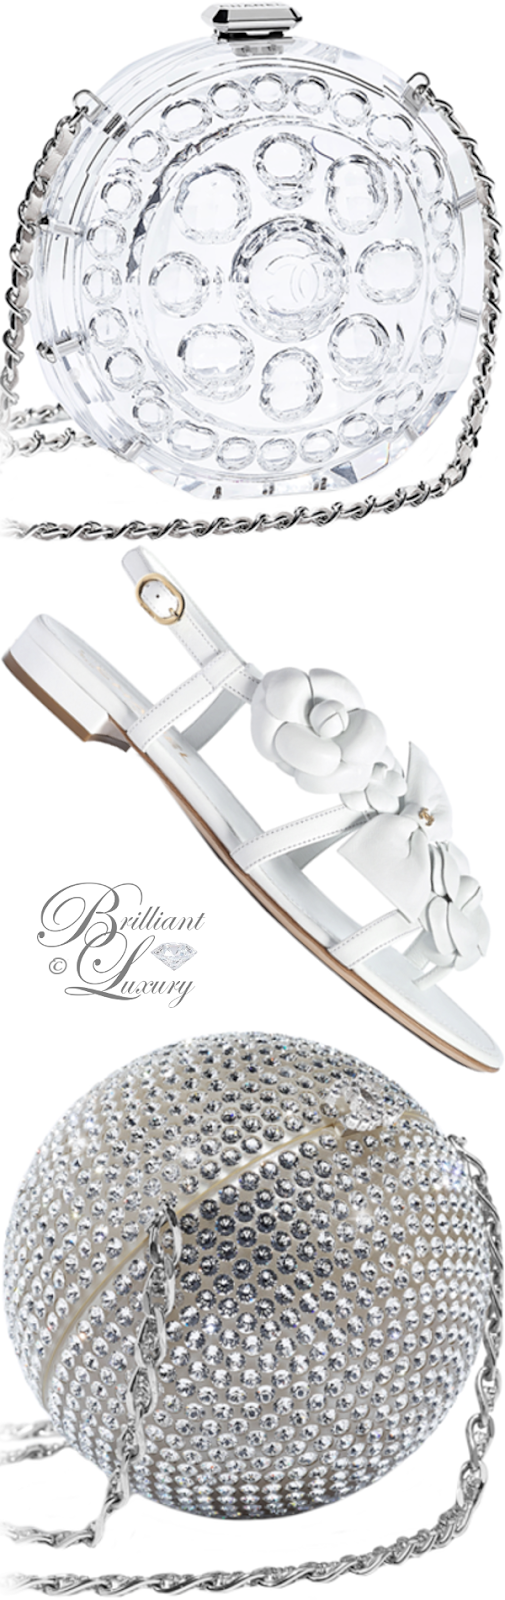 Brilliant Luxury ♦ Chanel silver strass and transparent minaudiere combined with chanel white flat sandals